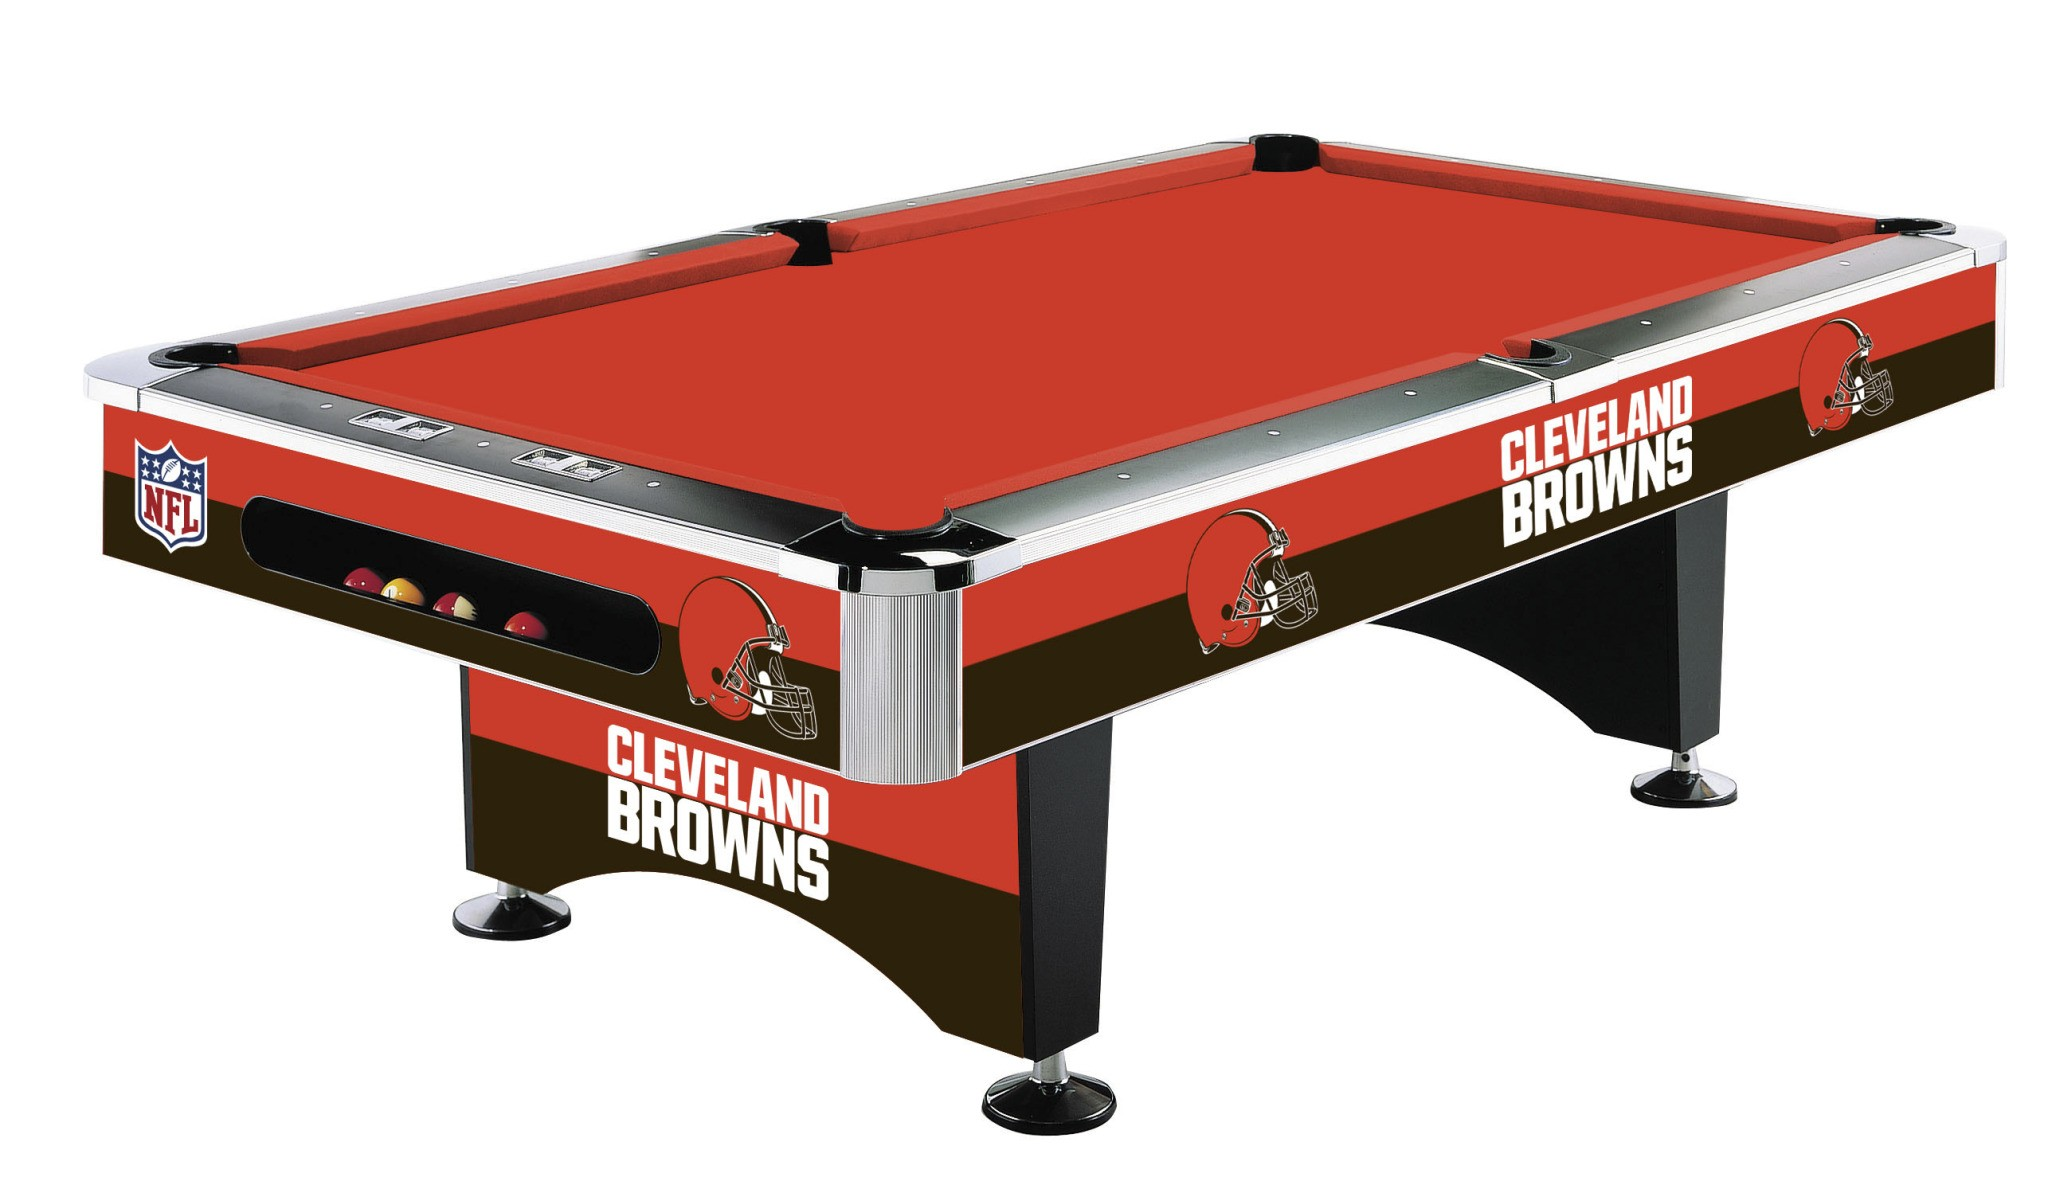 CLEVELAND BROWNS 8-FT. POOL TABLE